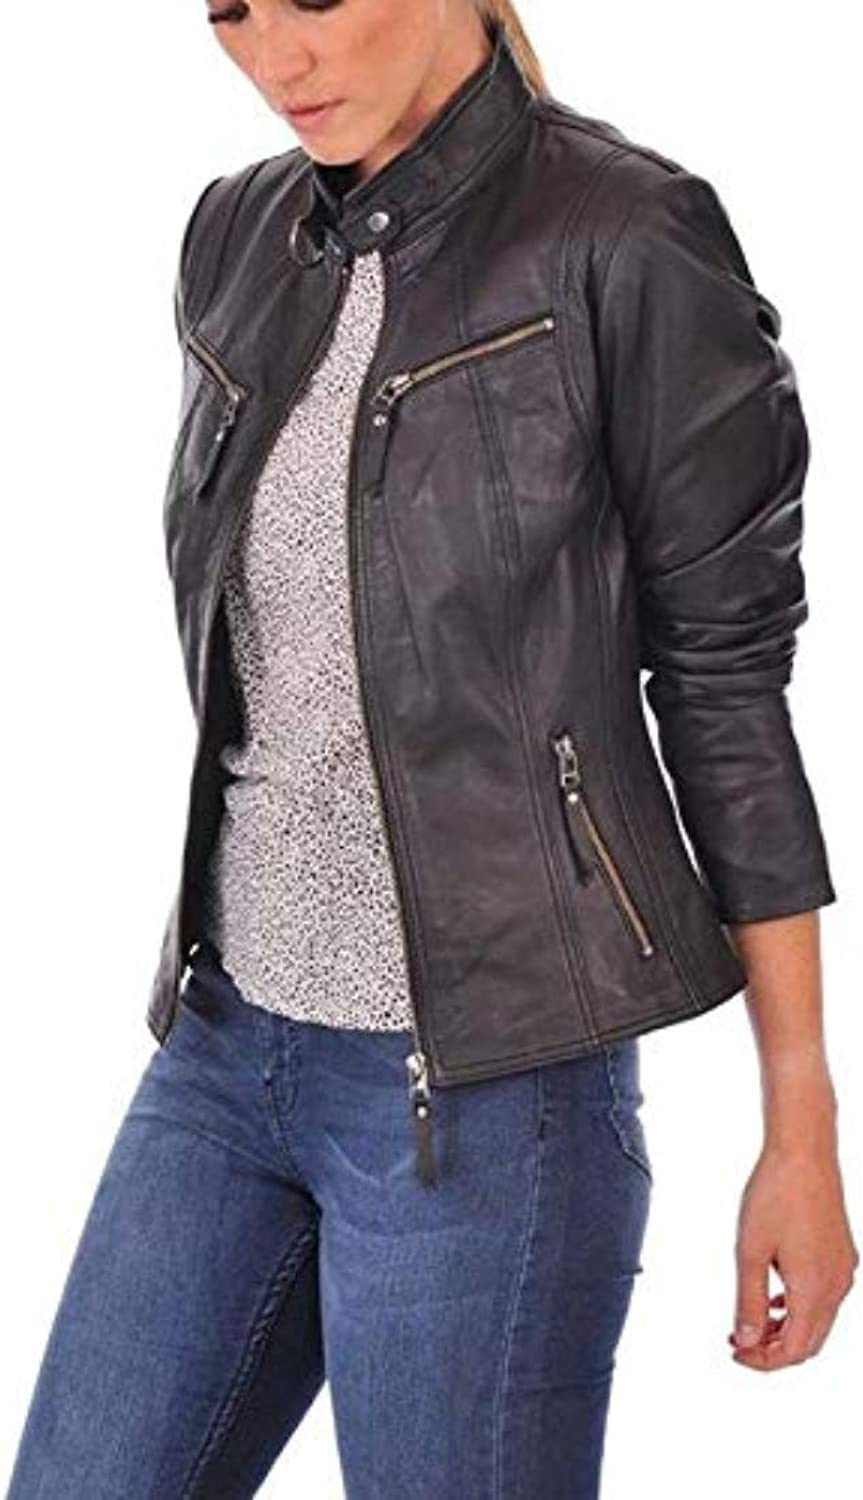 New Fashion Style Women's Leather Jackets Black I9_